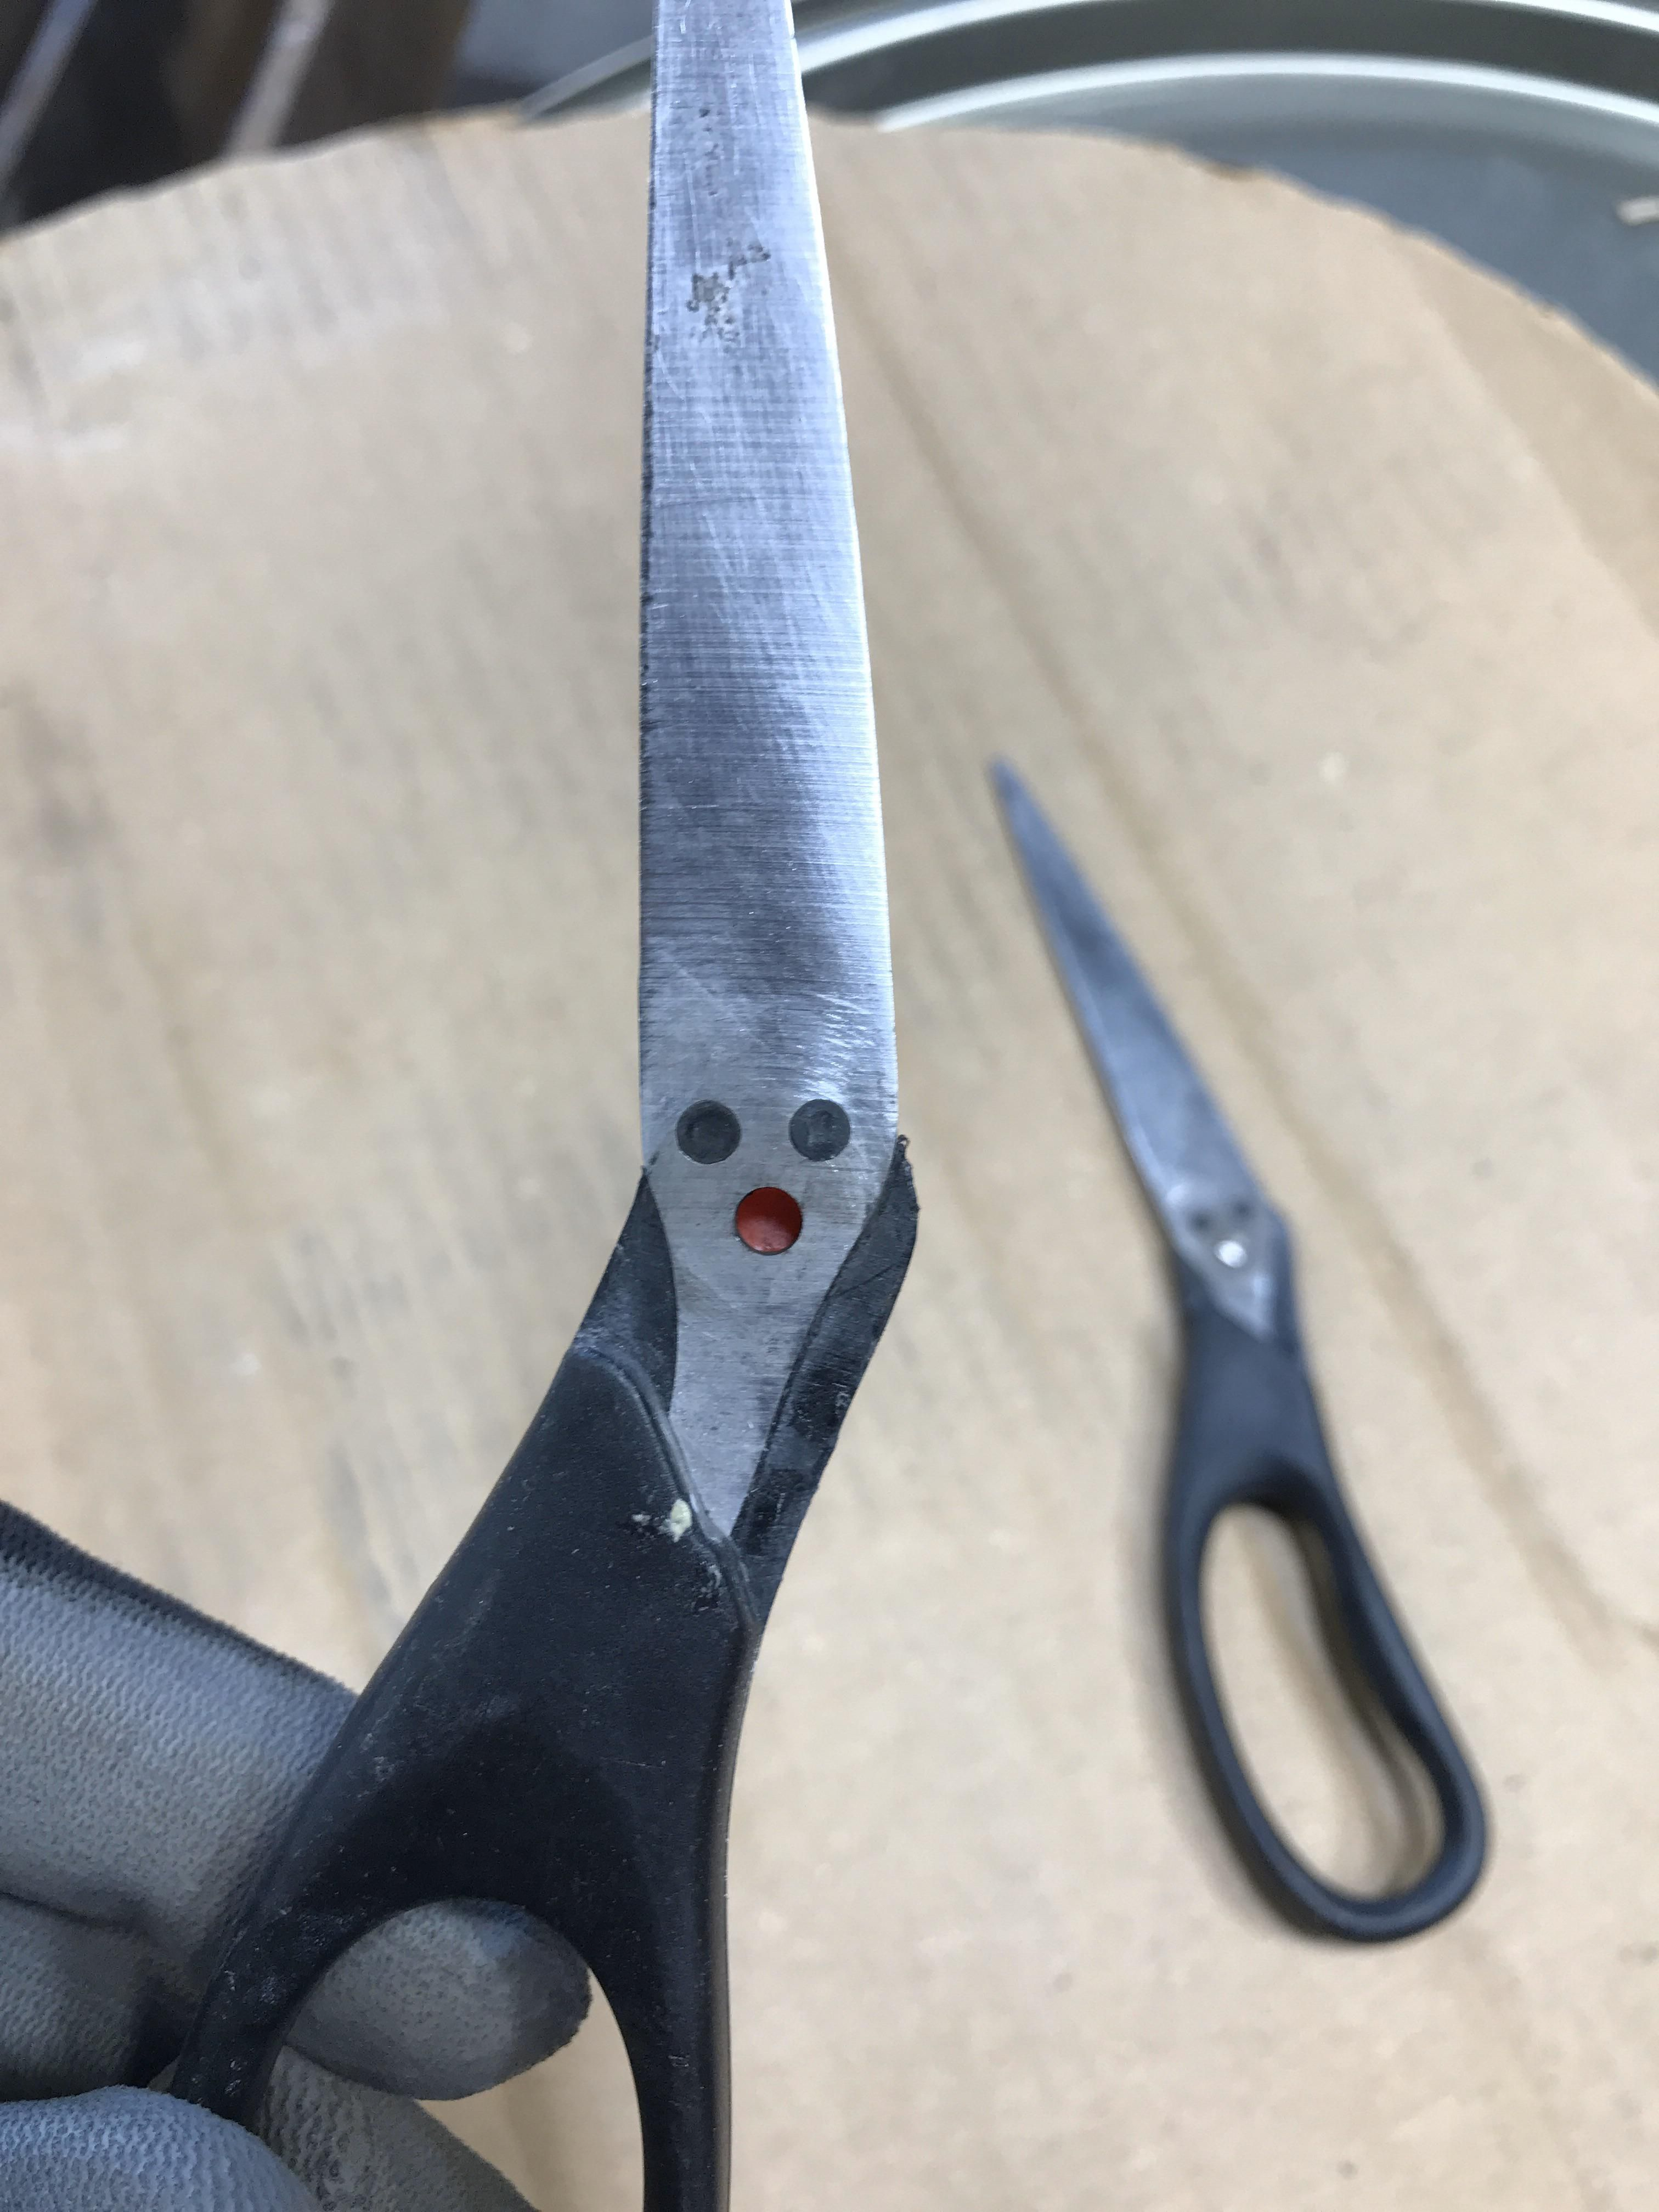 My scissors broke. They were just as surprised as I was.